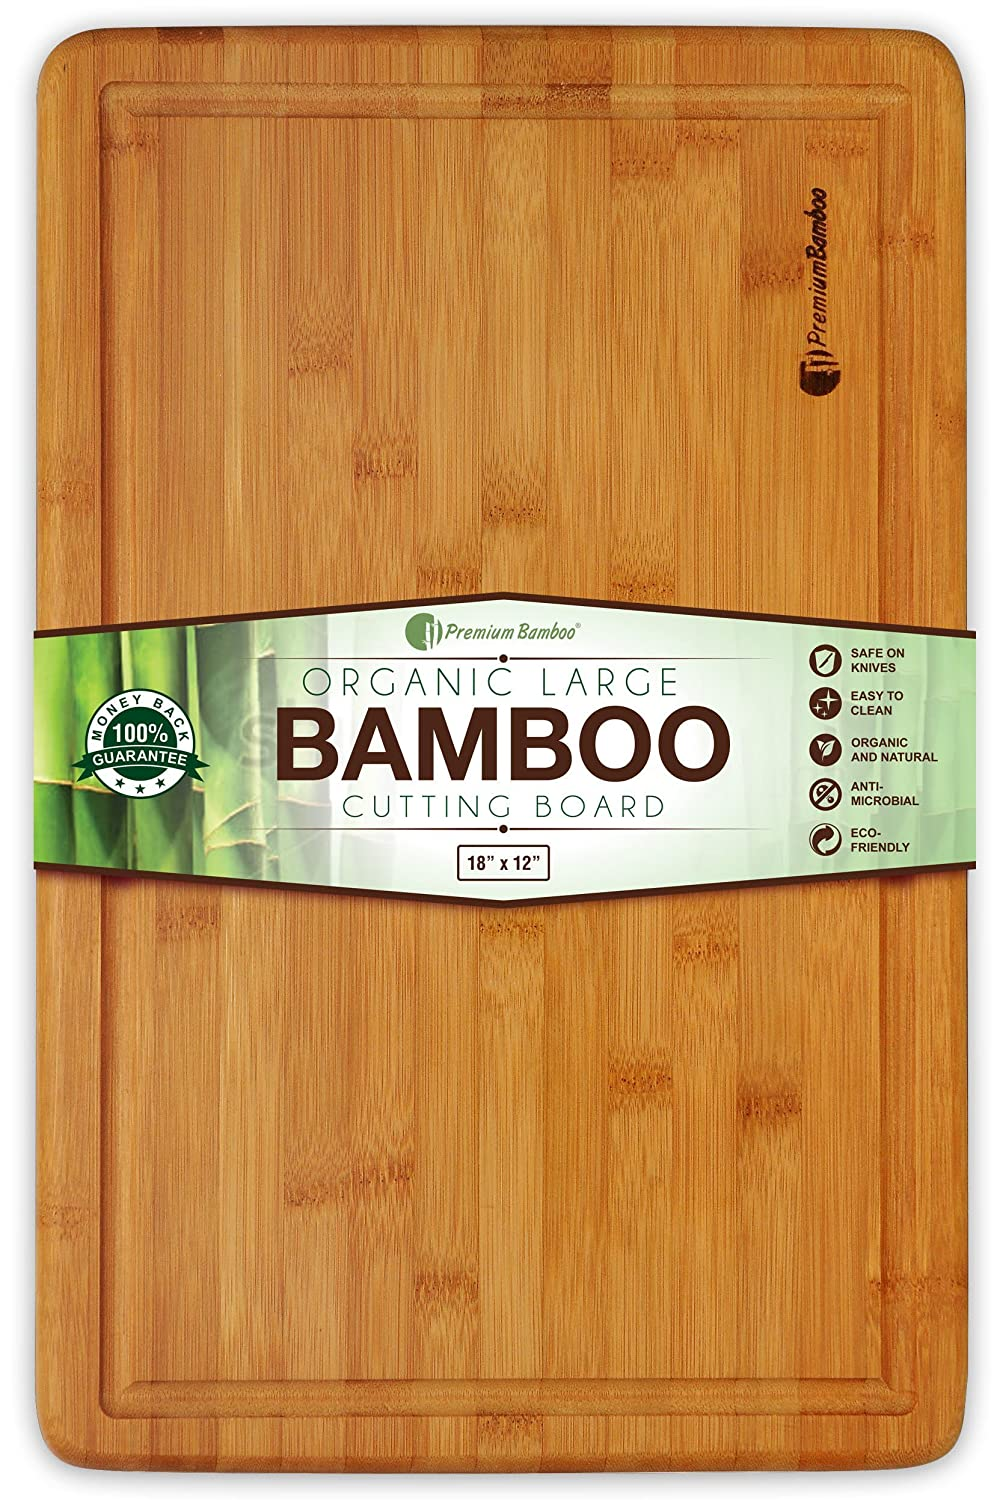 Extra Large Bamboo Cutting Board - 18x12